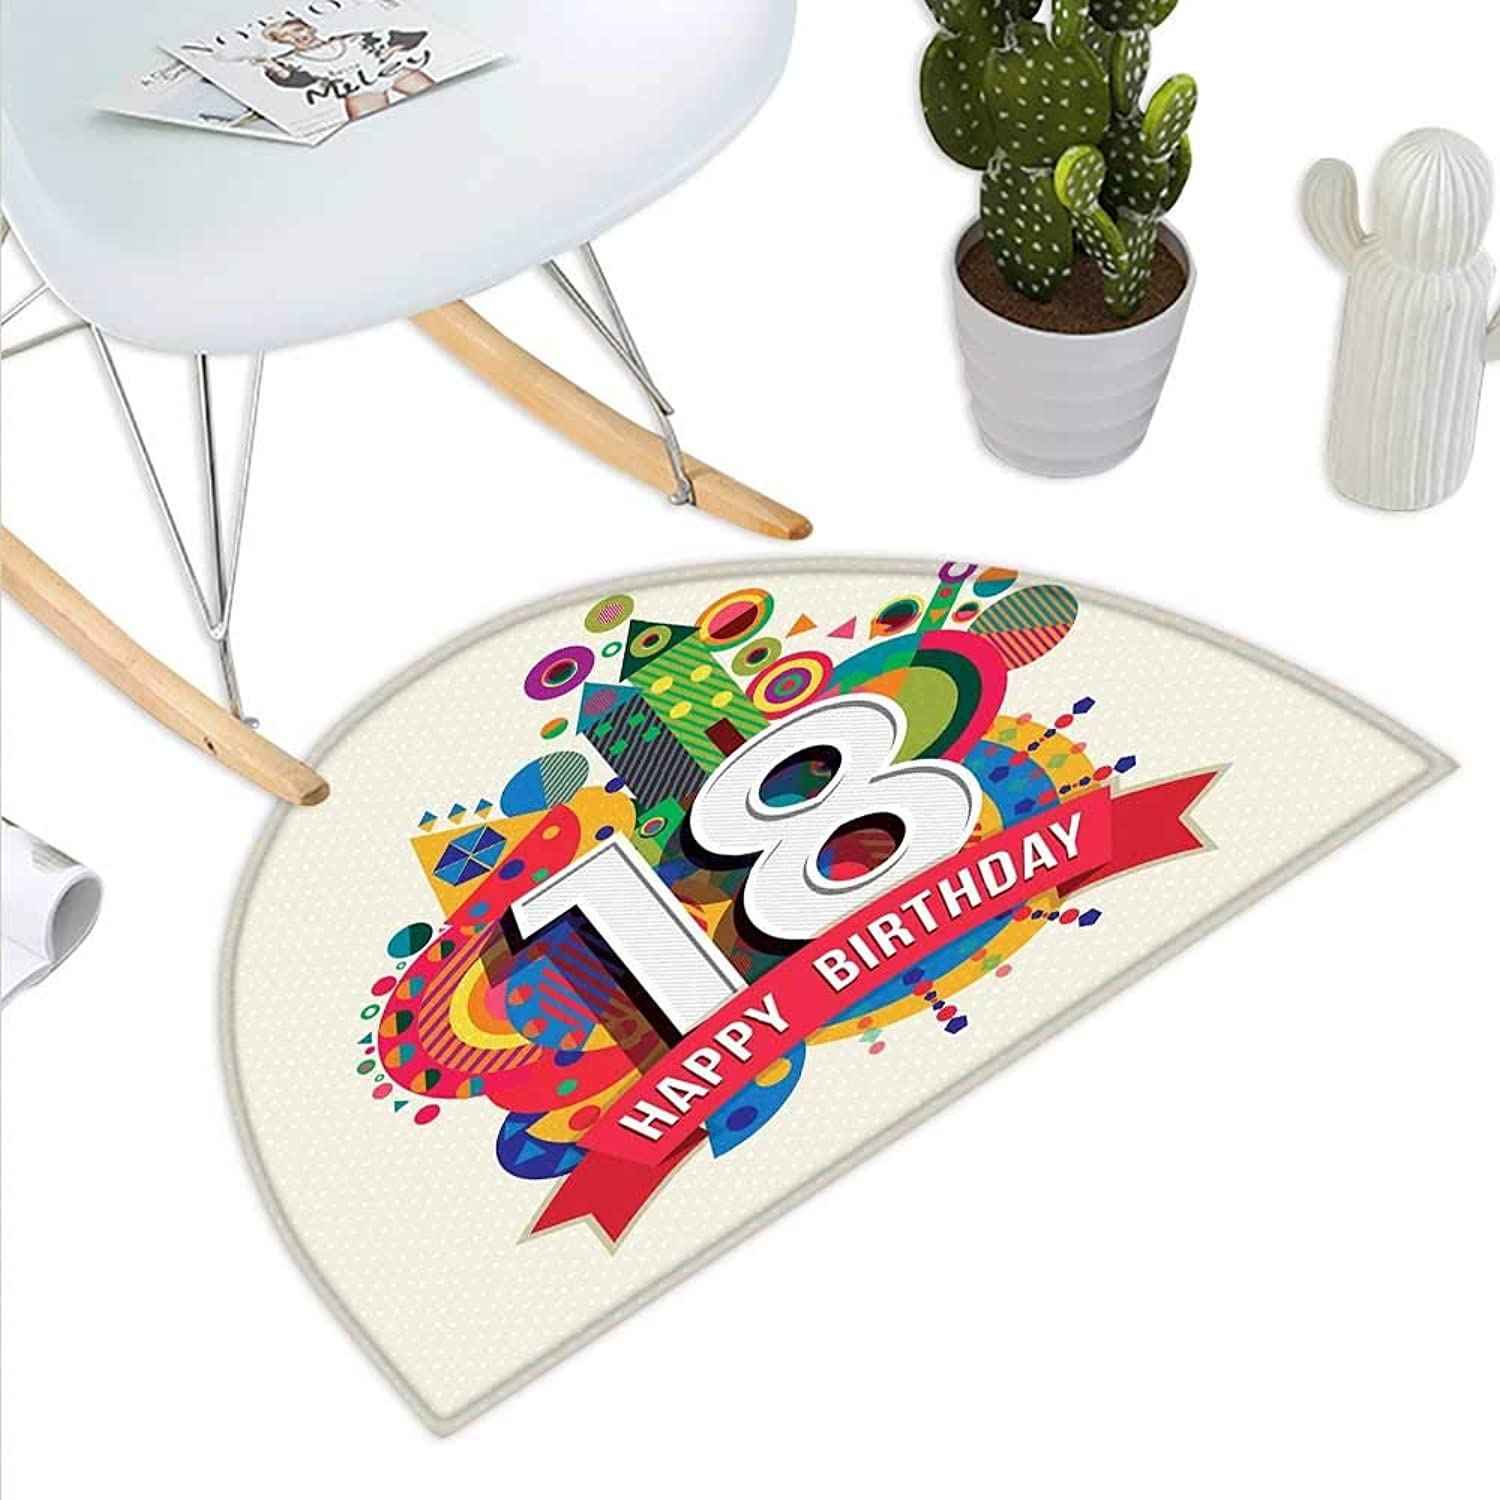 18th Birthday Semicircle Doormat colorful Geometric Stipes Dots Shapes Backdrop with Happy Birthday Quote Halfmoon doormats H 35.4  xD 53.1  Multicolor